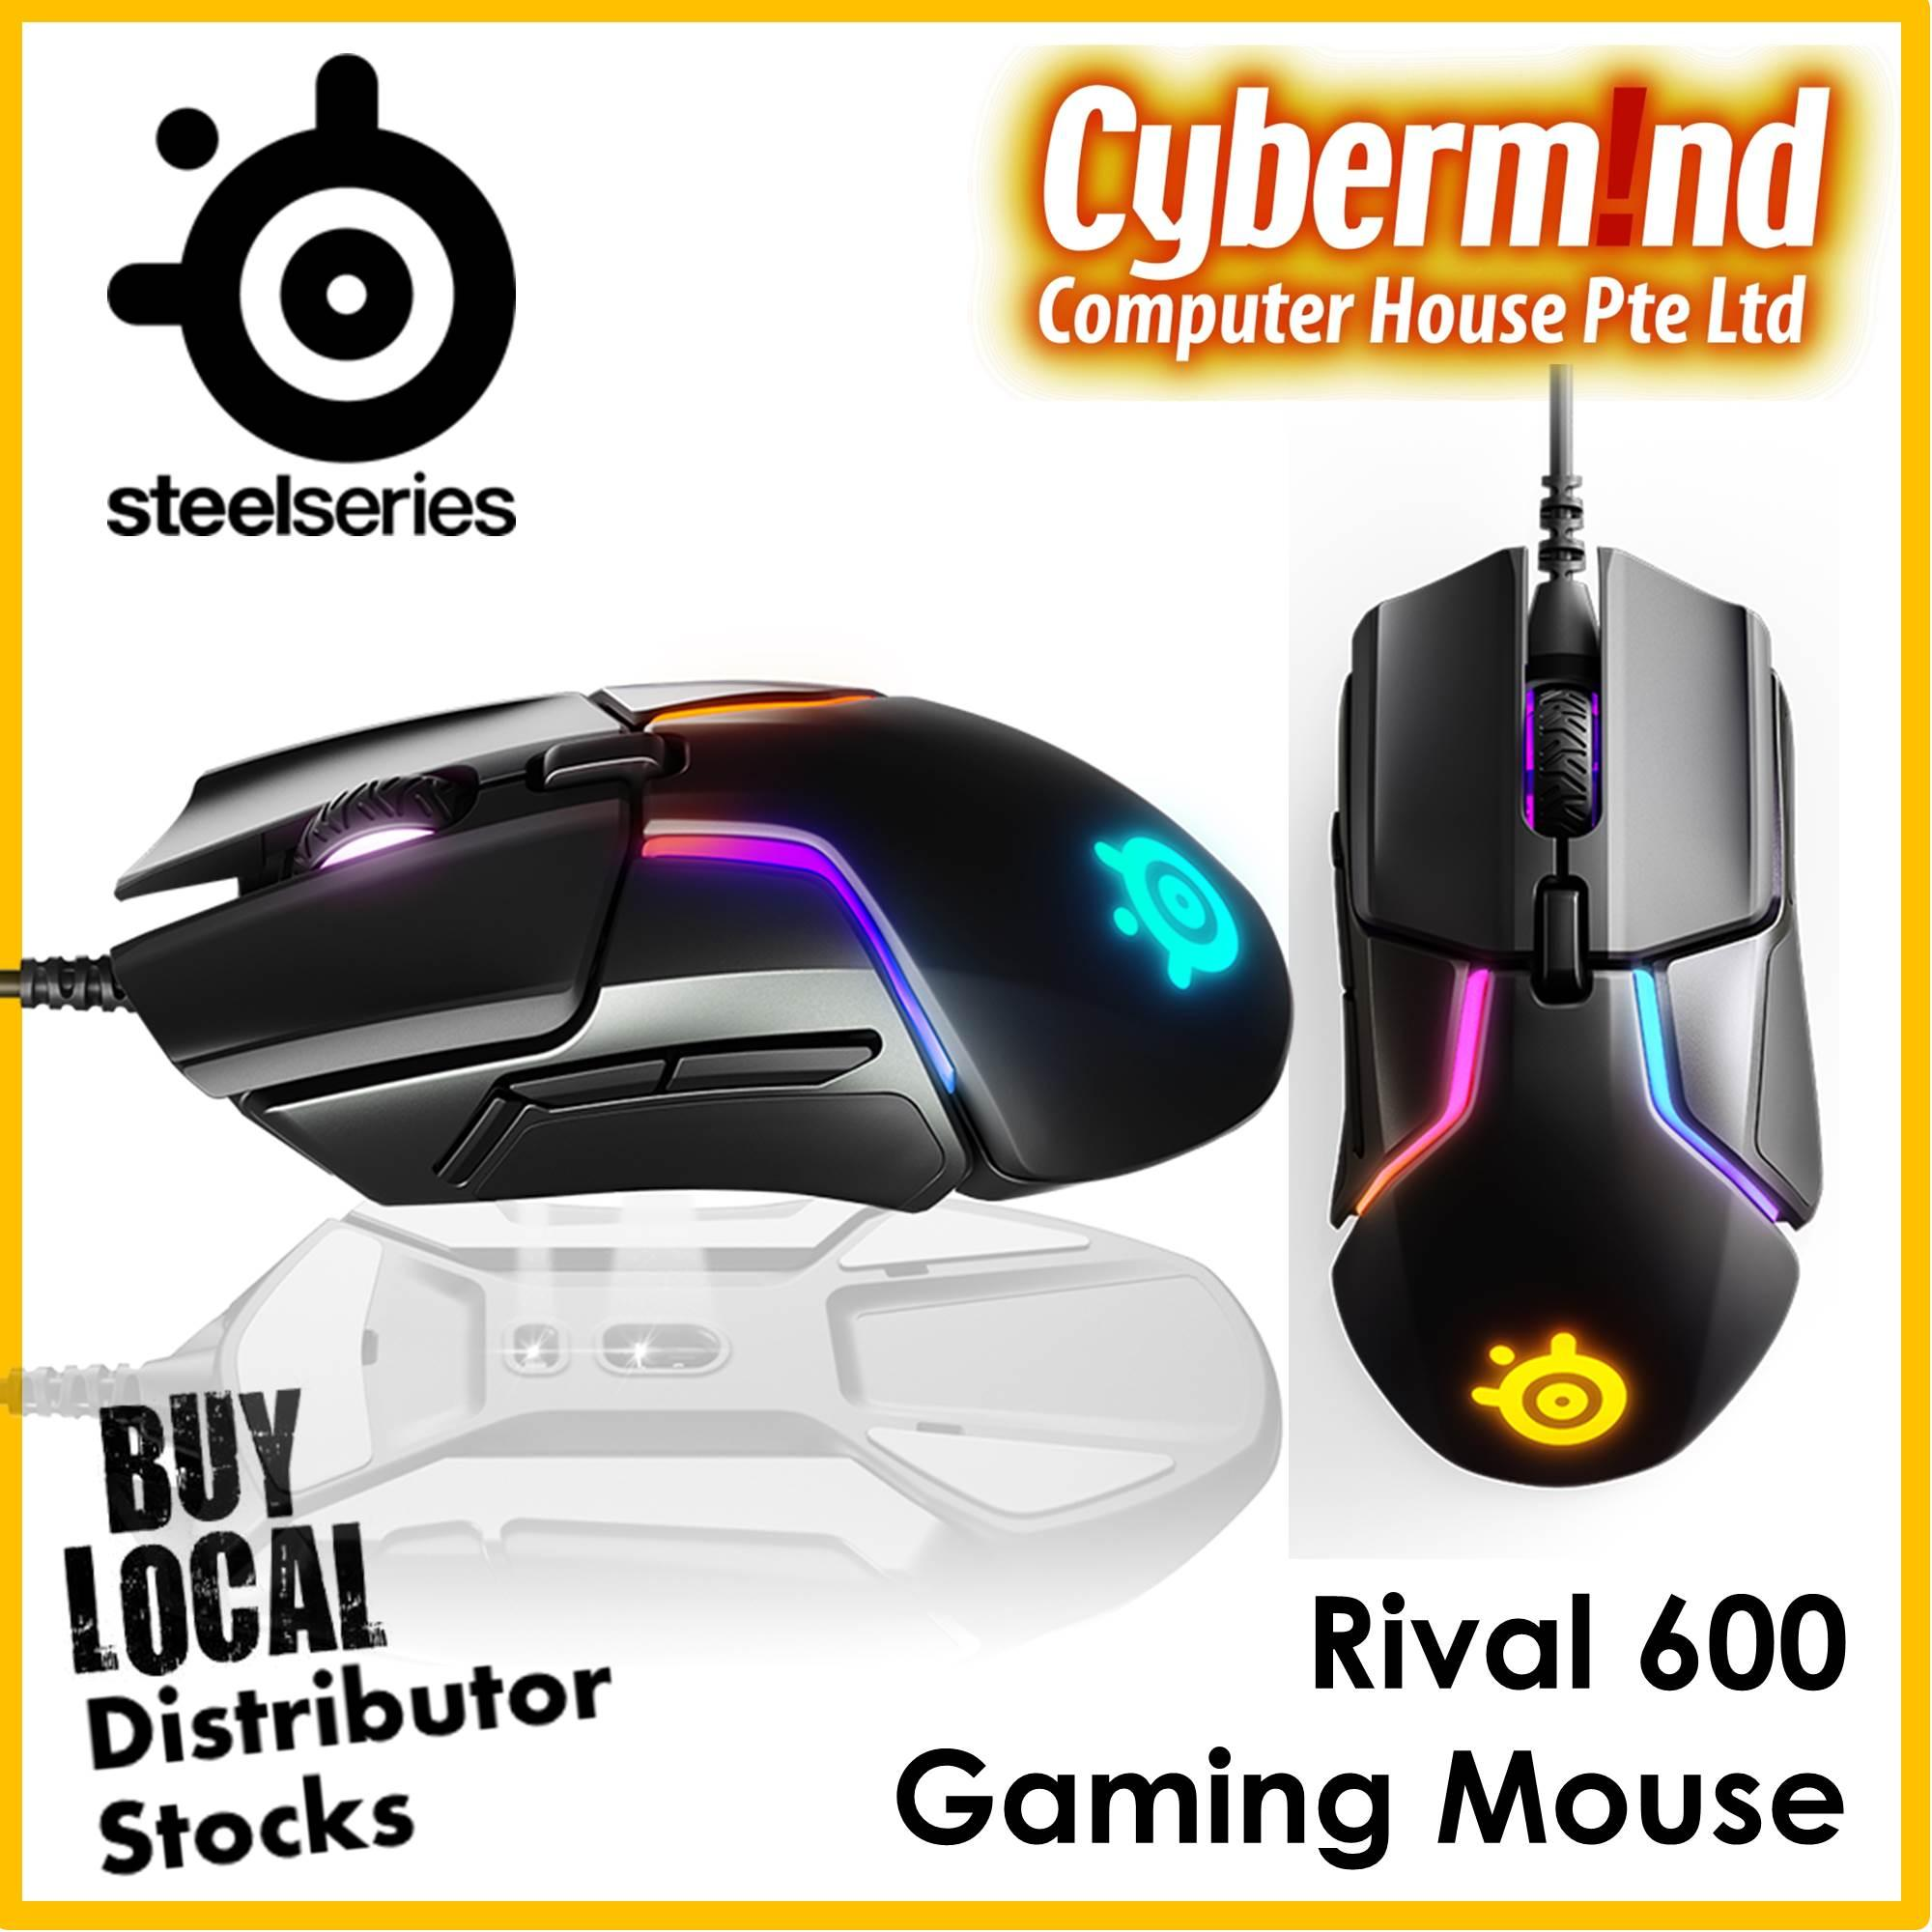 Steelseries Rival 600 - Gaming Mouse designed for eSports